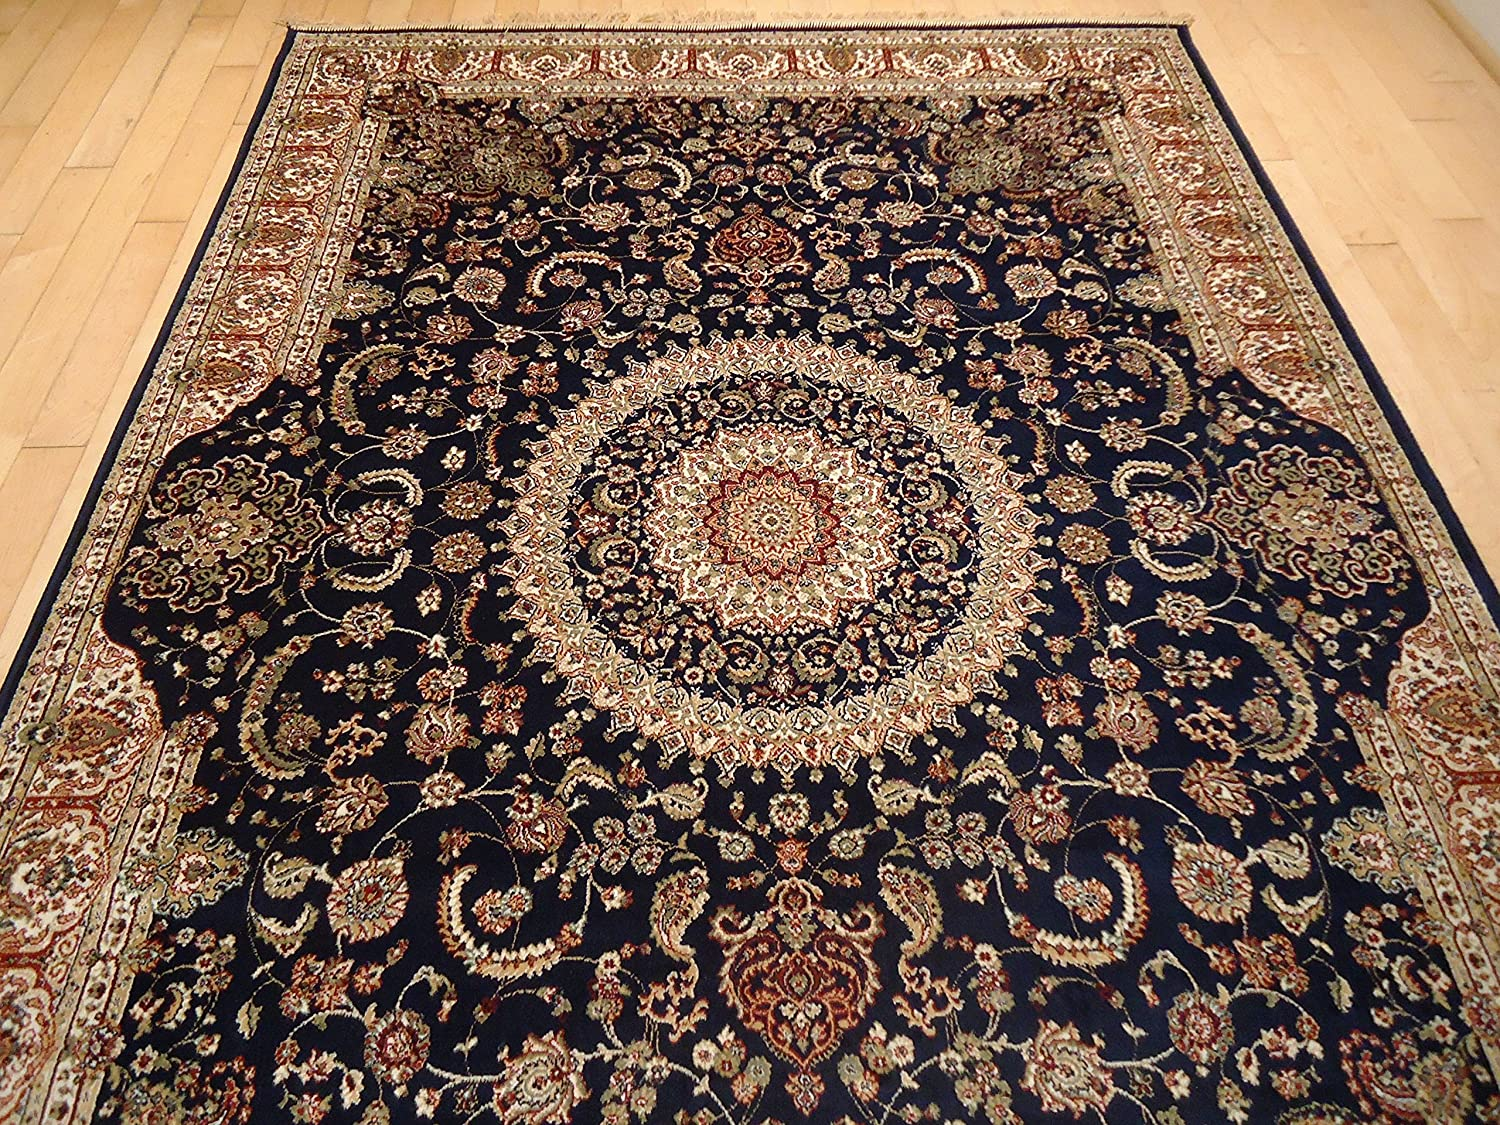 Amazon Luxury Silk Persian Area Rugs Navy Living Room 8x12 Traditional 8x11 Dining Rug Tabriz Design Low Pile Kitchen